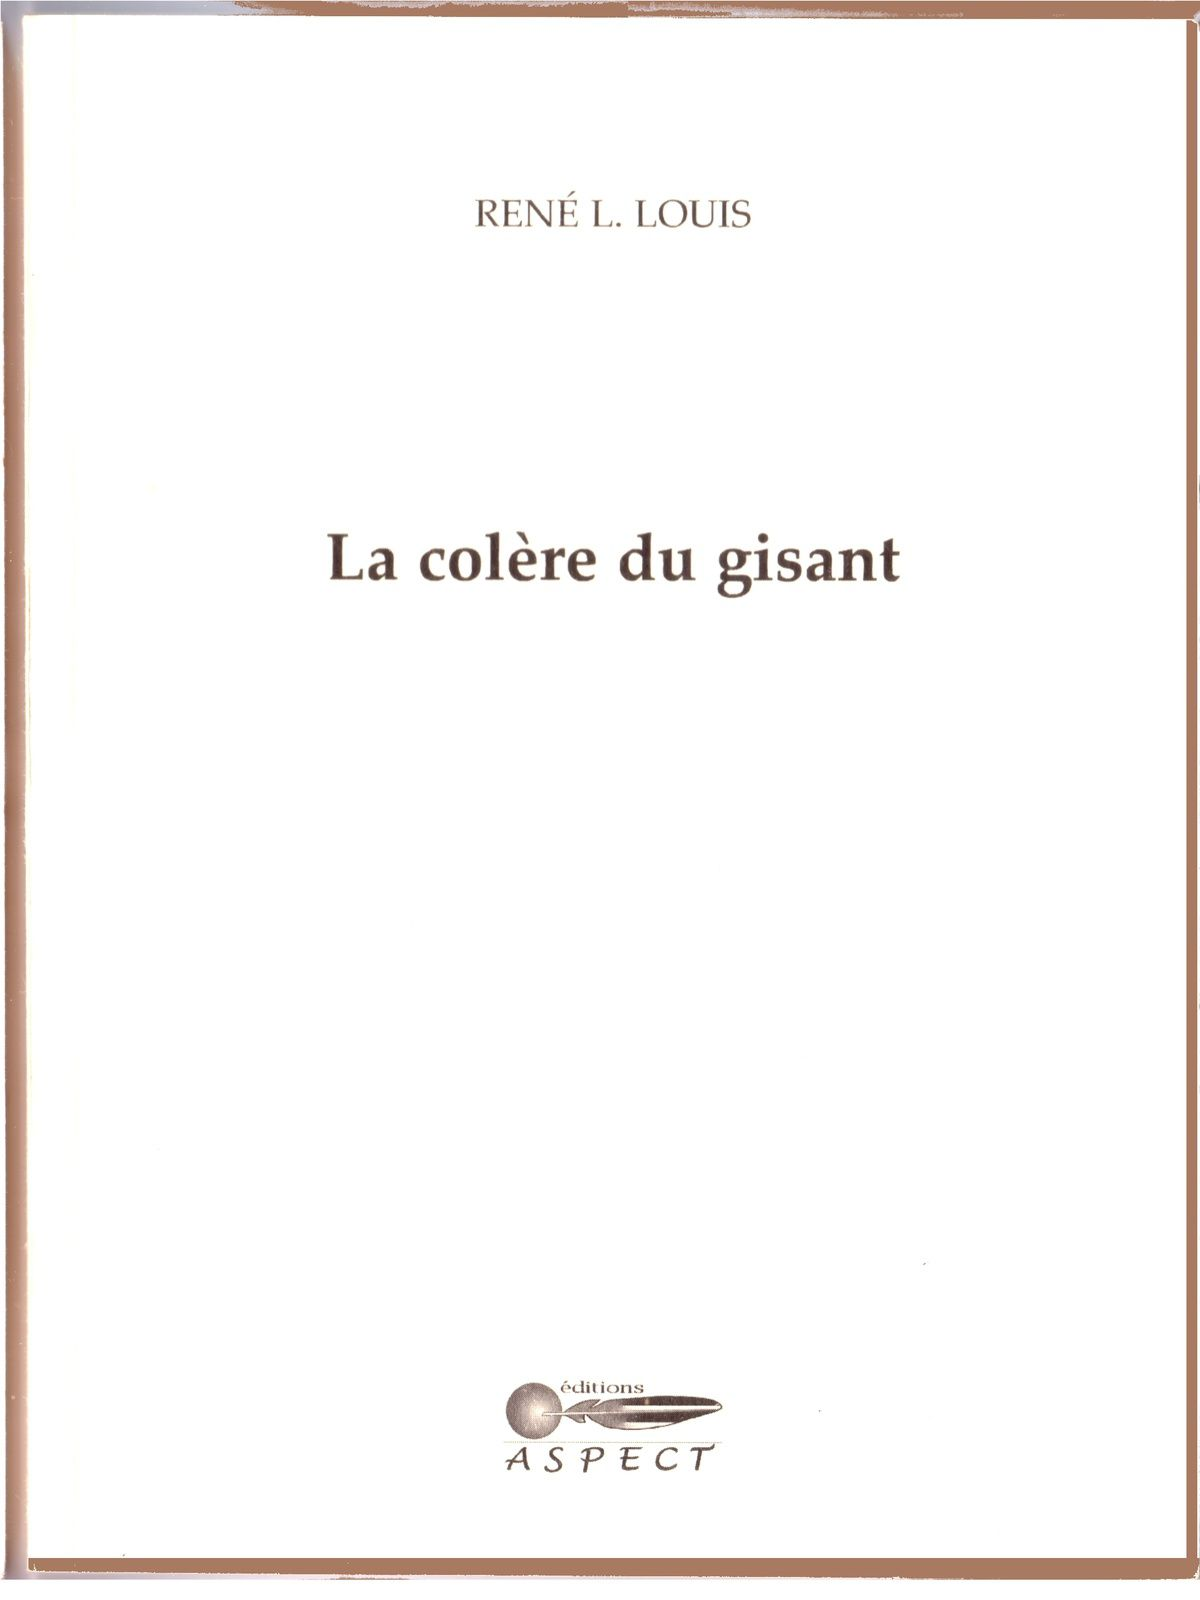 La colère du gisant   de René L. Louis - collection Folium - dos carré-collé - format 15 x 20 cm - 34 pages - ISBN : 9782952155449 - prix : 8, 00 euros